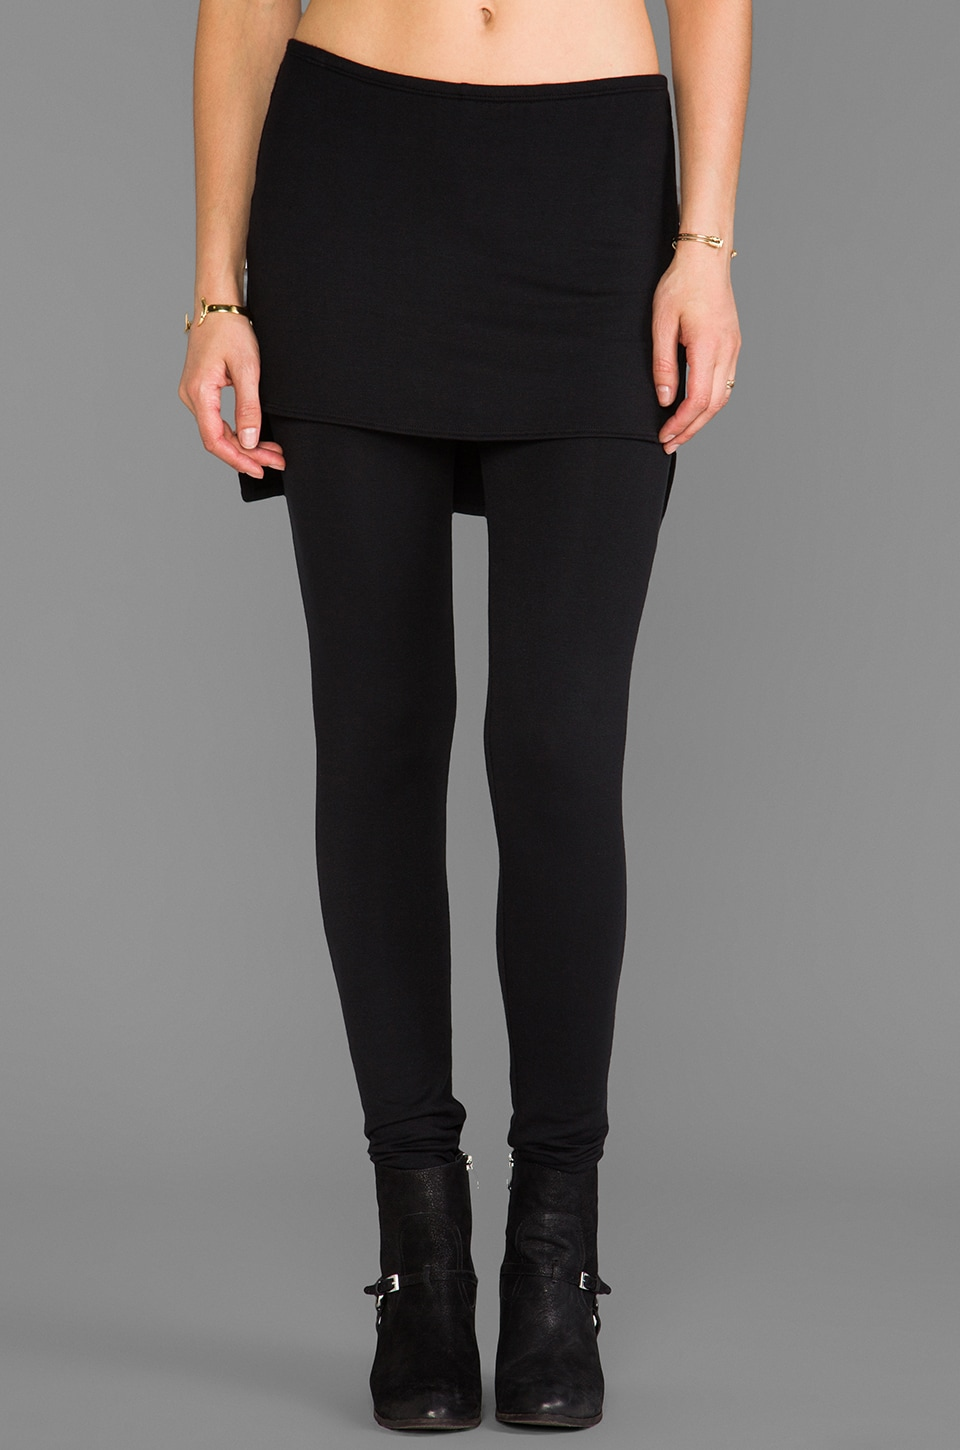 Riller & Fount Max High-Low Skirt Legging in Black